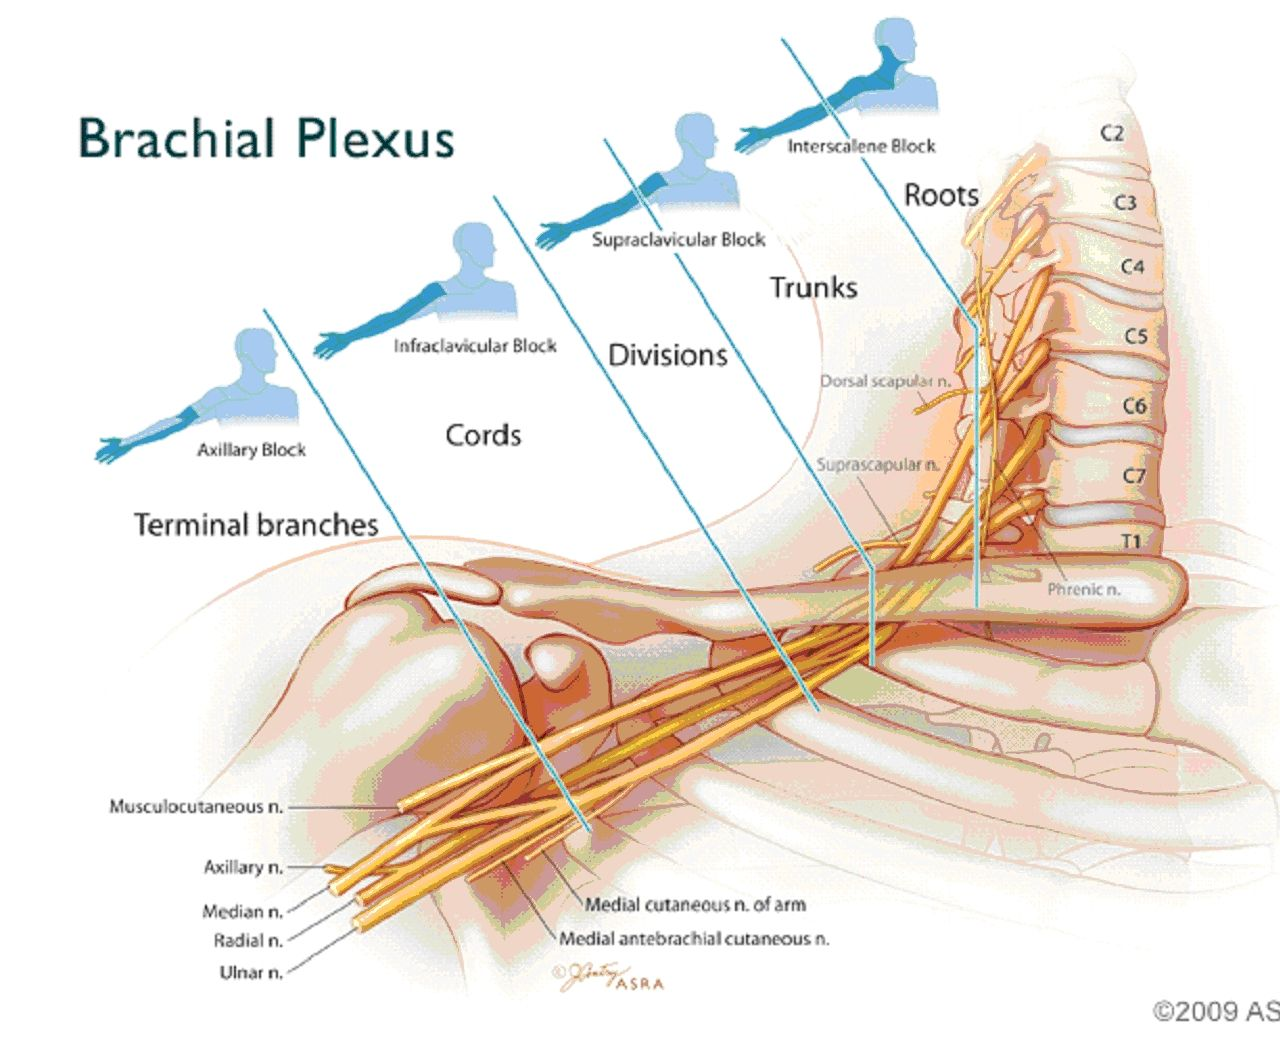 Often injuries to the brachial plexus can take place from similar ...